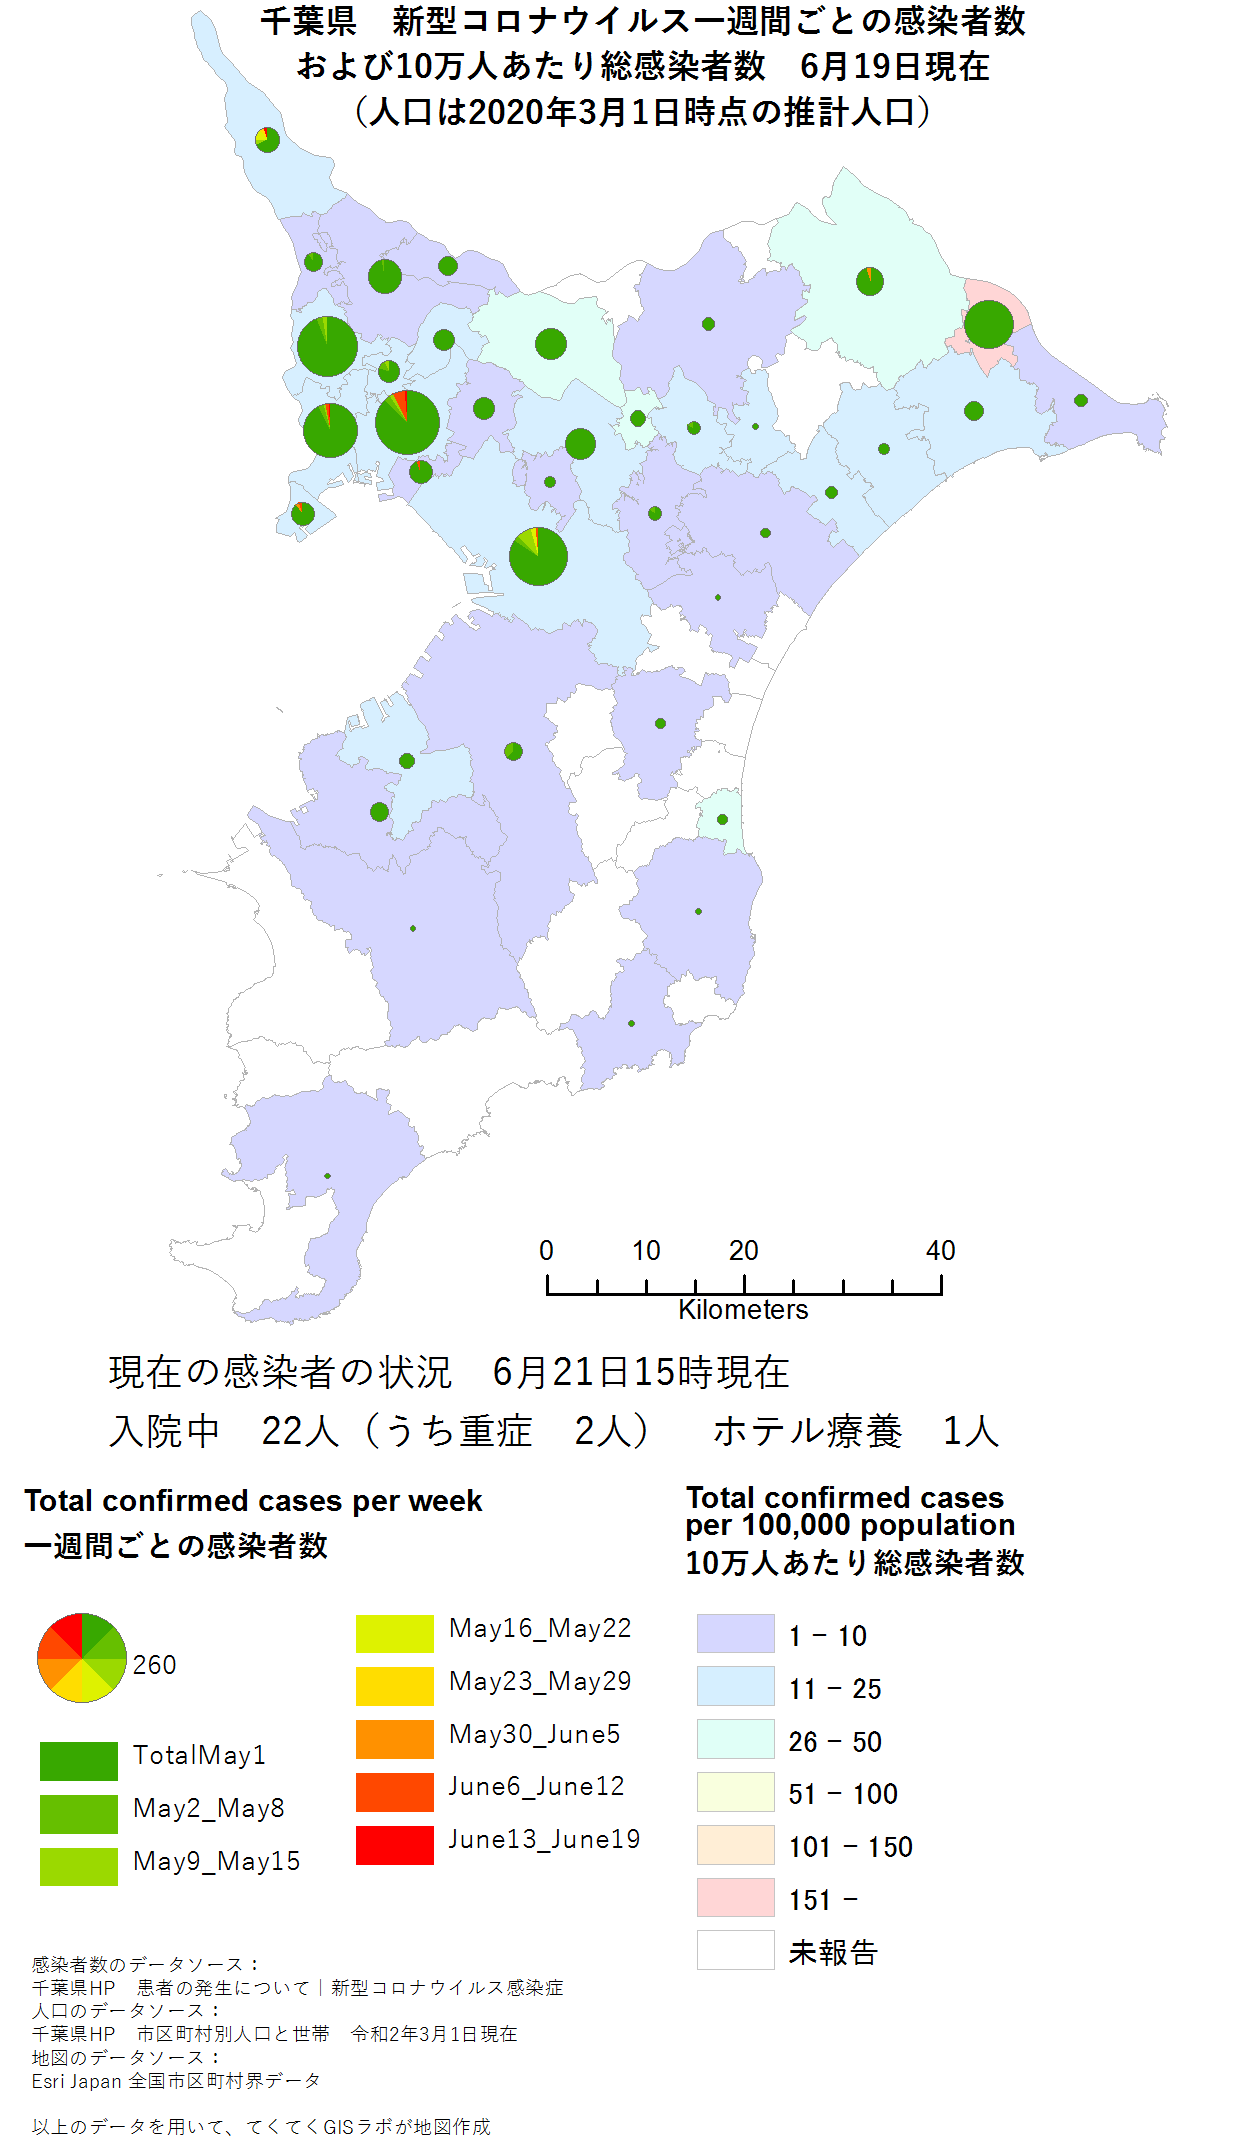 Total cases per week from May, Chiba